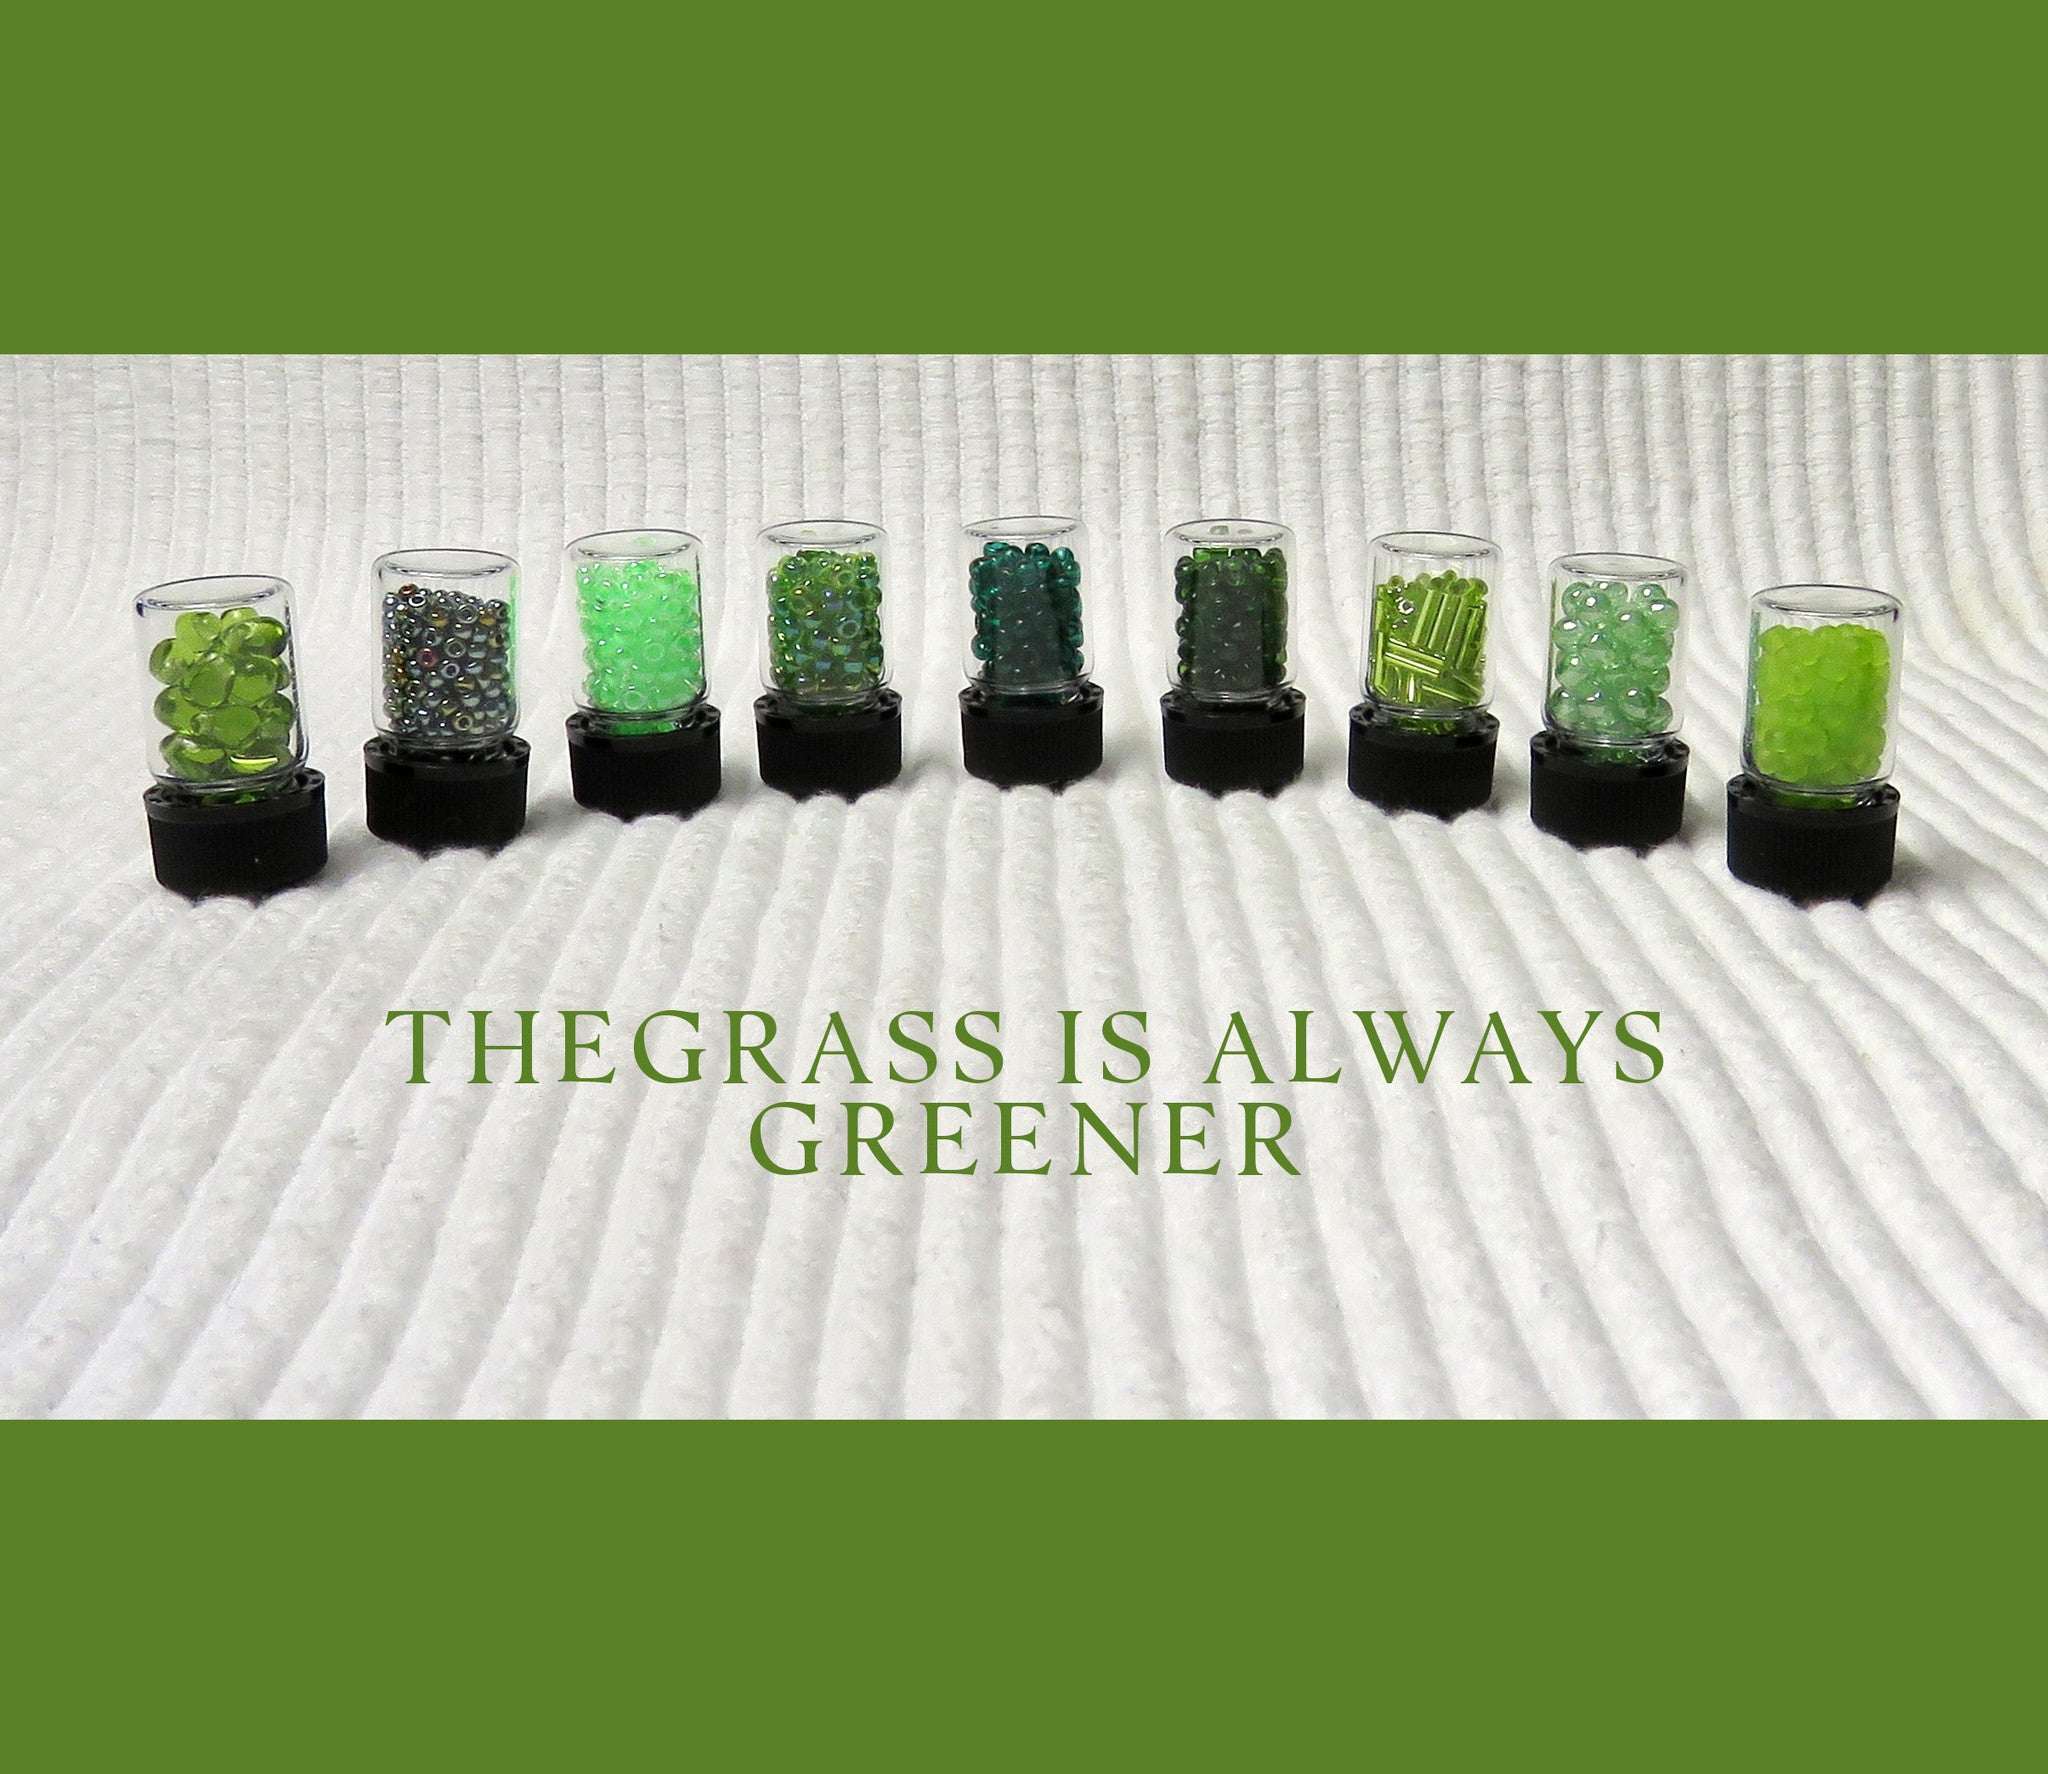 The Grass is Greener Bead Collection and Book